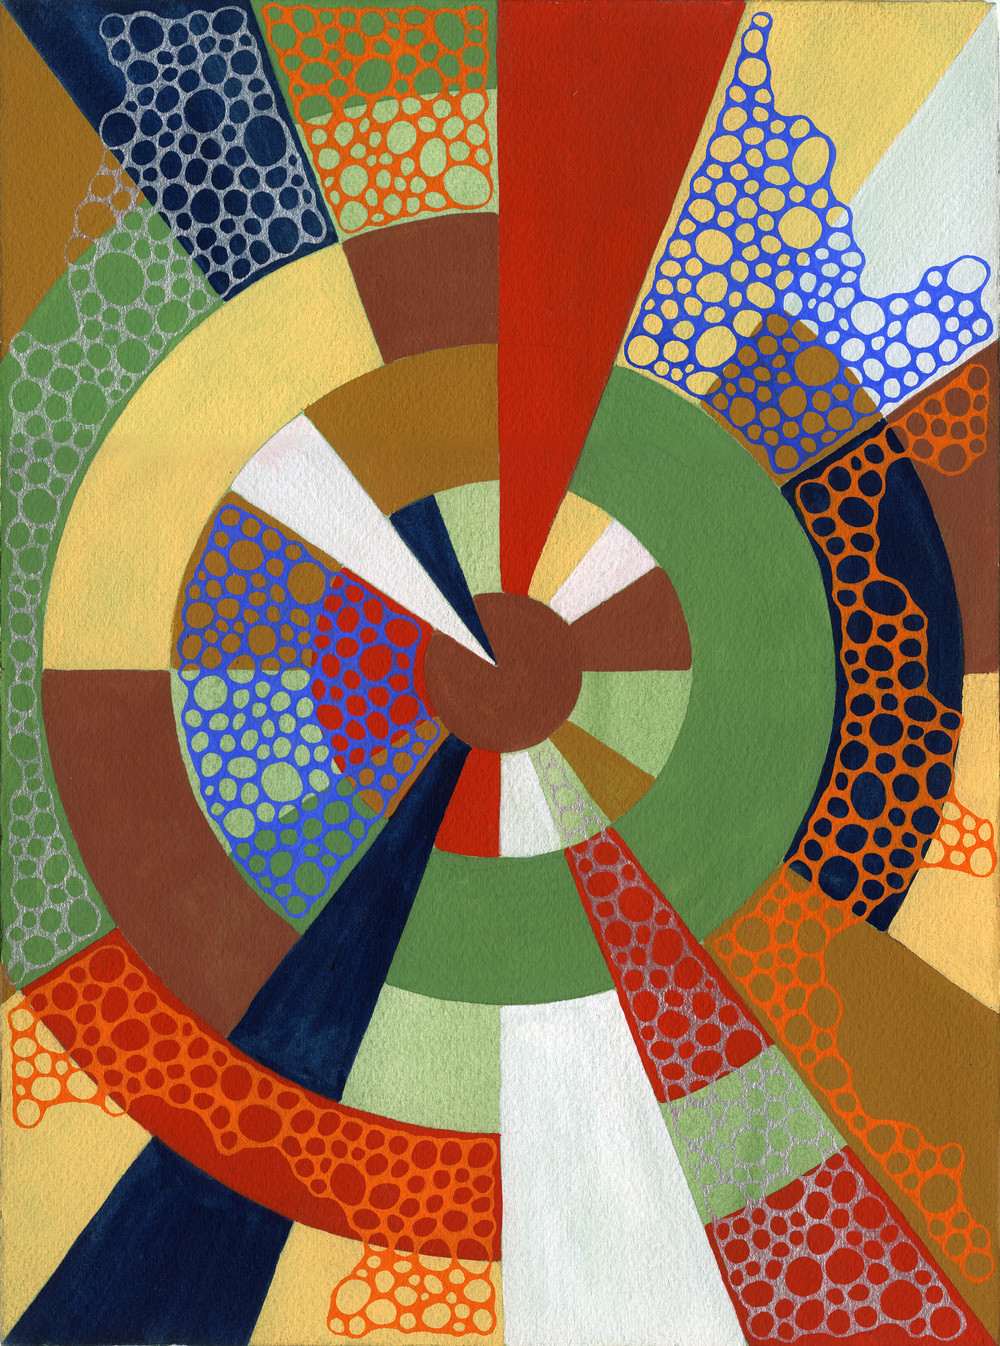 Untitled 012615 Homage to Sonia Delaunay